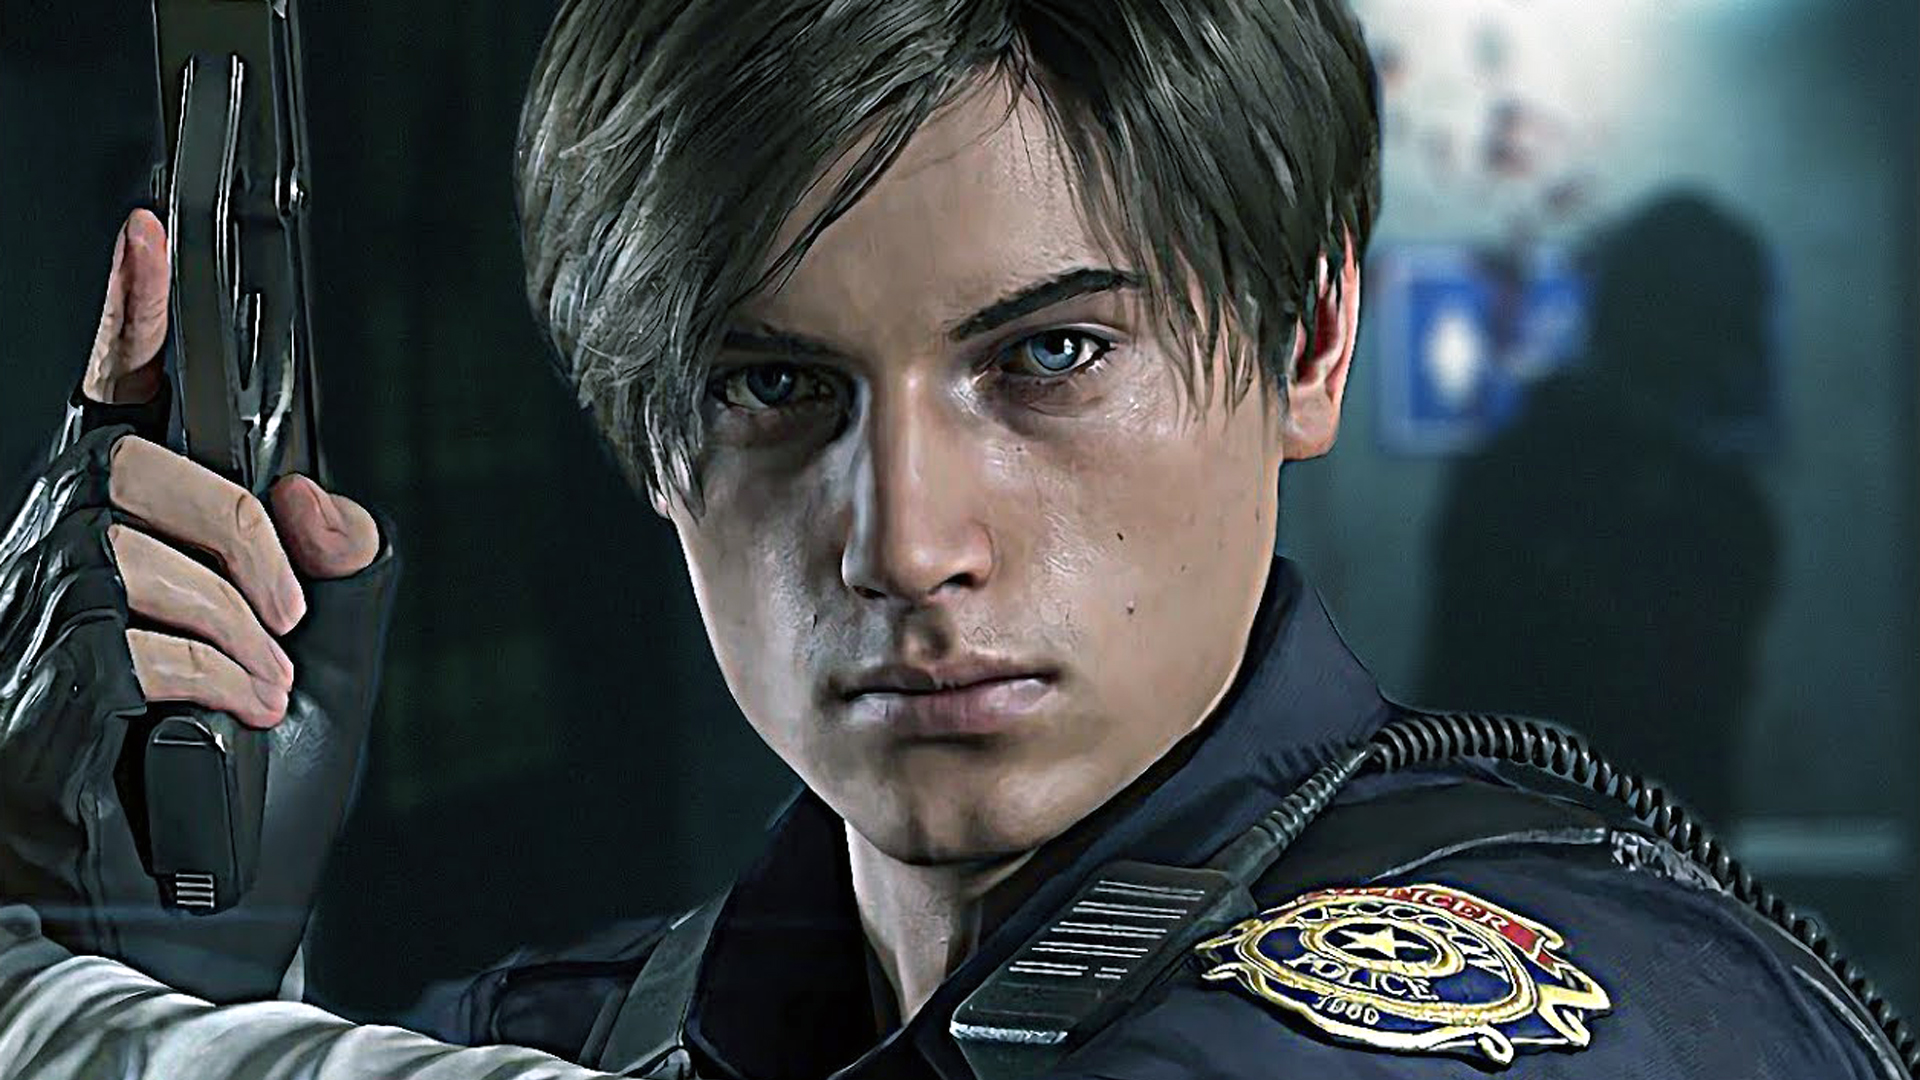 Resident Evil 4 remake is possibly being teased for Gamescom